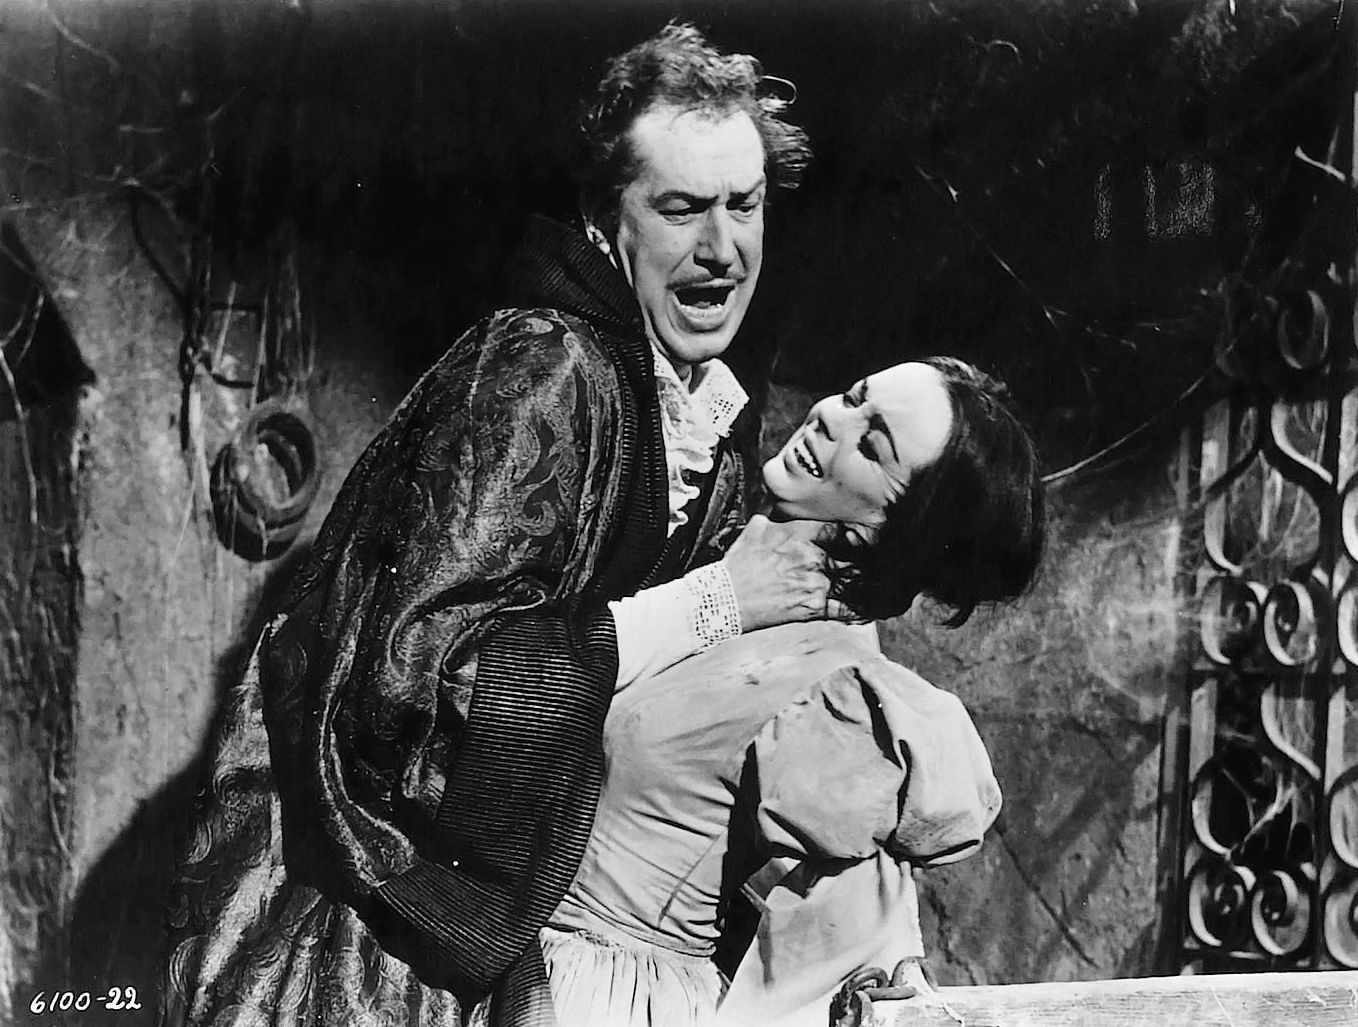 17 best images about vincent price gene tierney the pit and the pendulum edgar allan poe barbara steele and vincent price